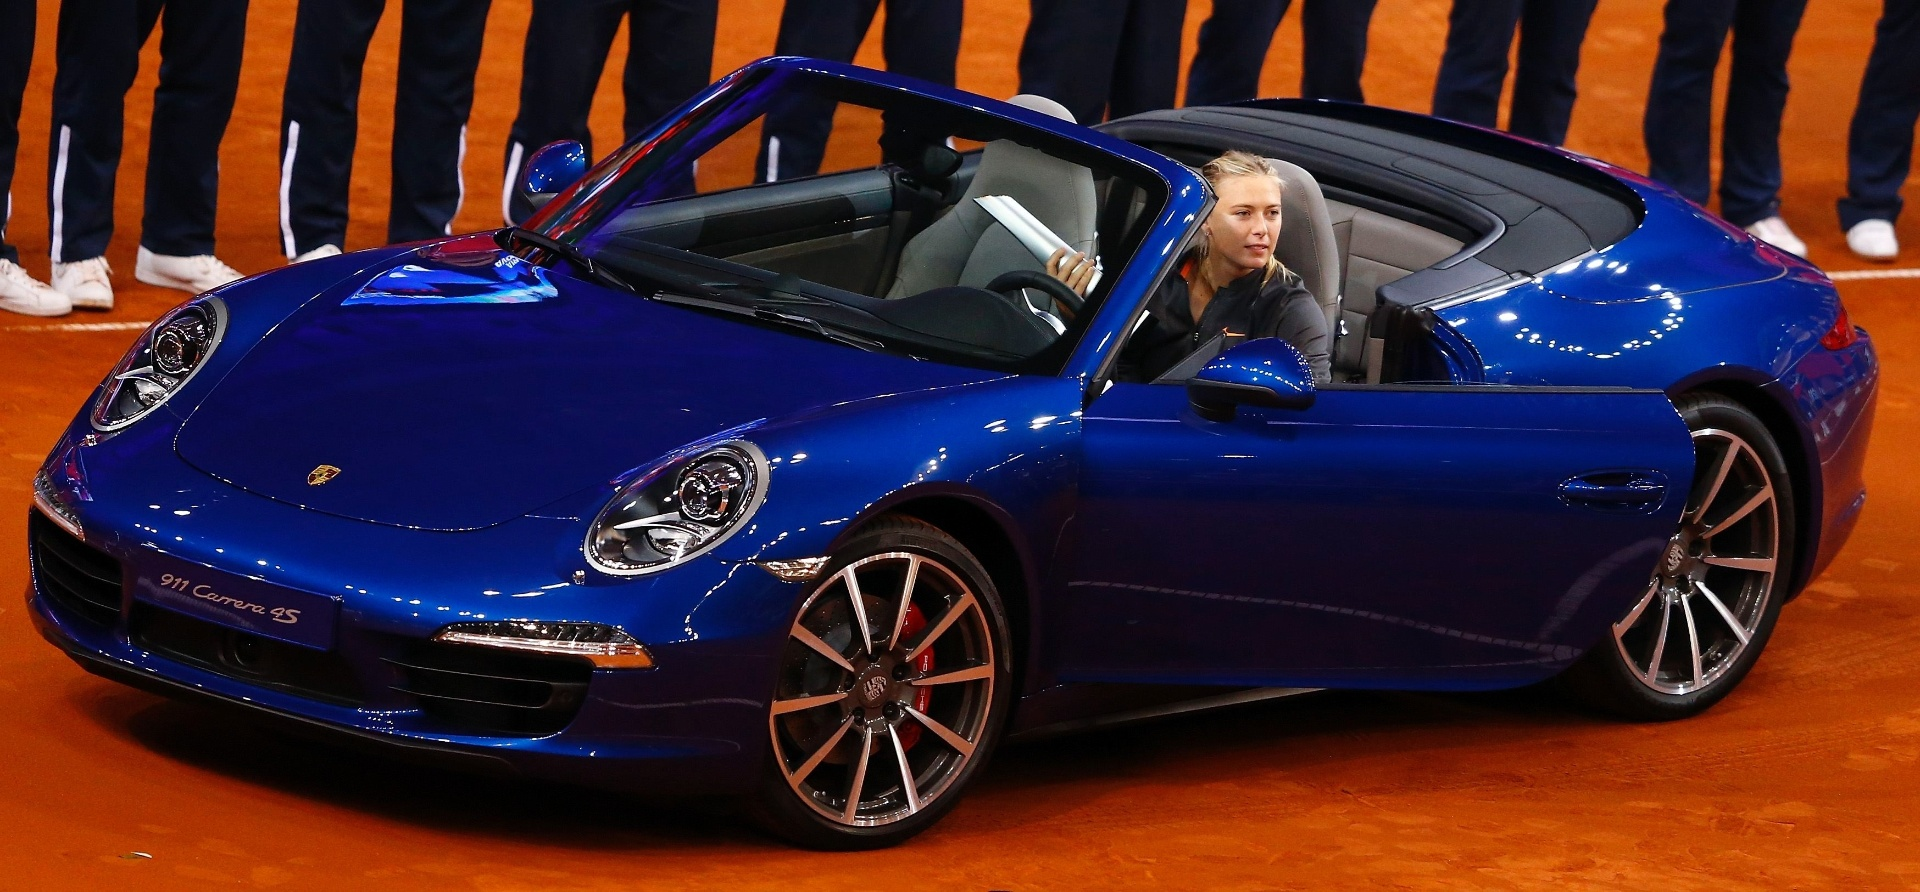 28.abr.2013 - Sharapova testa Porsche 911 4S que ganhou aps vencer a final do Torneio de Stuttgart, na Alemanha